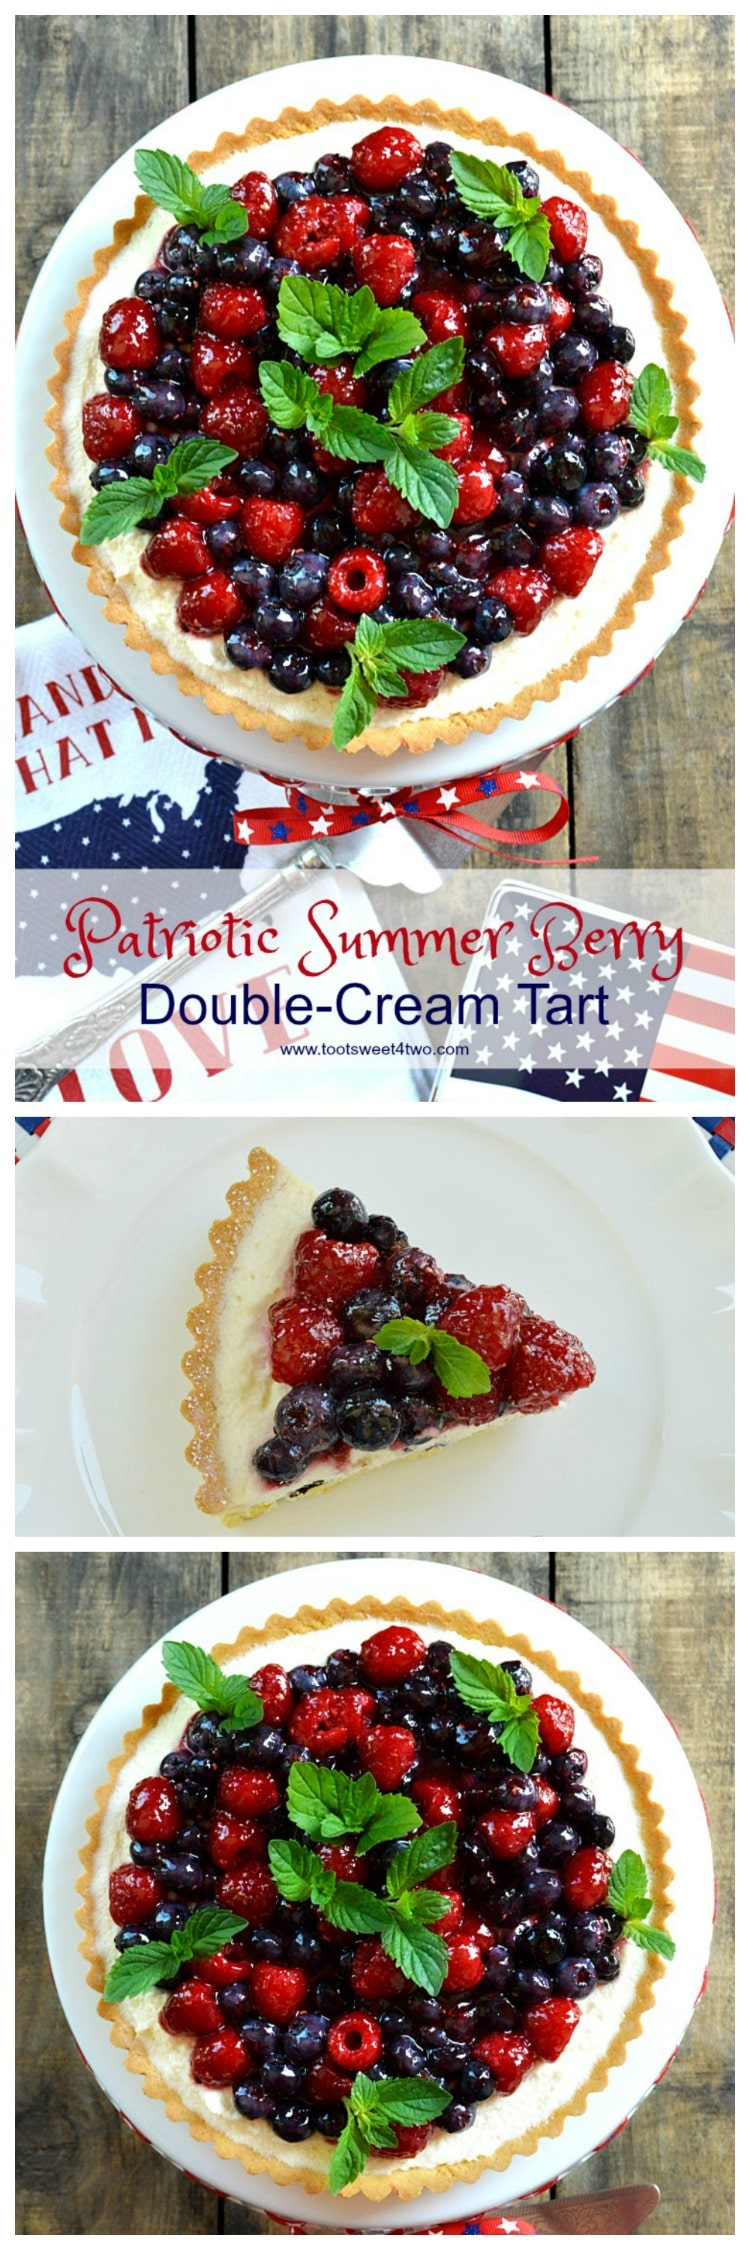 An easy, no-bake dessert, Patriotic Summer Berry Double-Cream Tart is a winning recipe to celebrate 4th of July or any other red, white and blue holiday. A flaky, store-bought sweet pastry tart shell covered with a sweet double-cream filling and topped with fresh fruit, makes a beautiful and delicious treat for Independence Day! | www.tootsweet4two.com